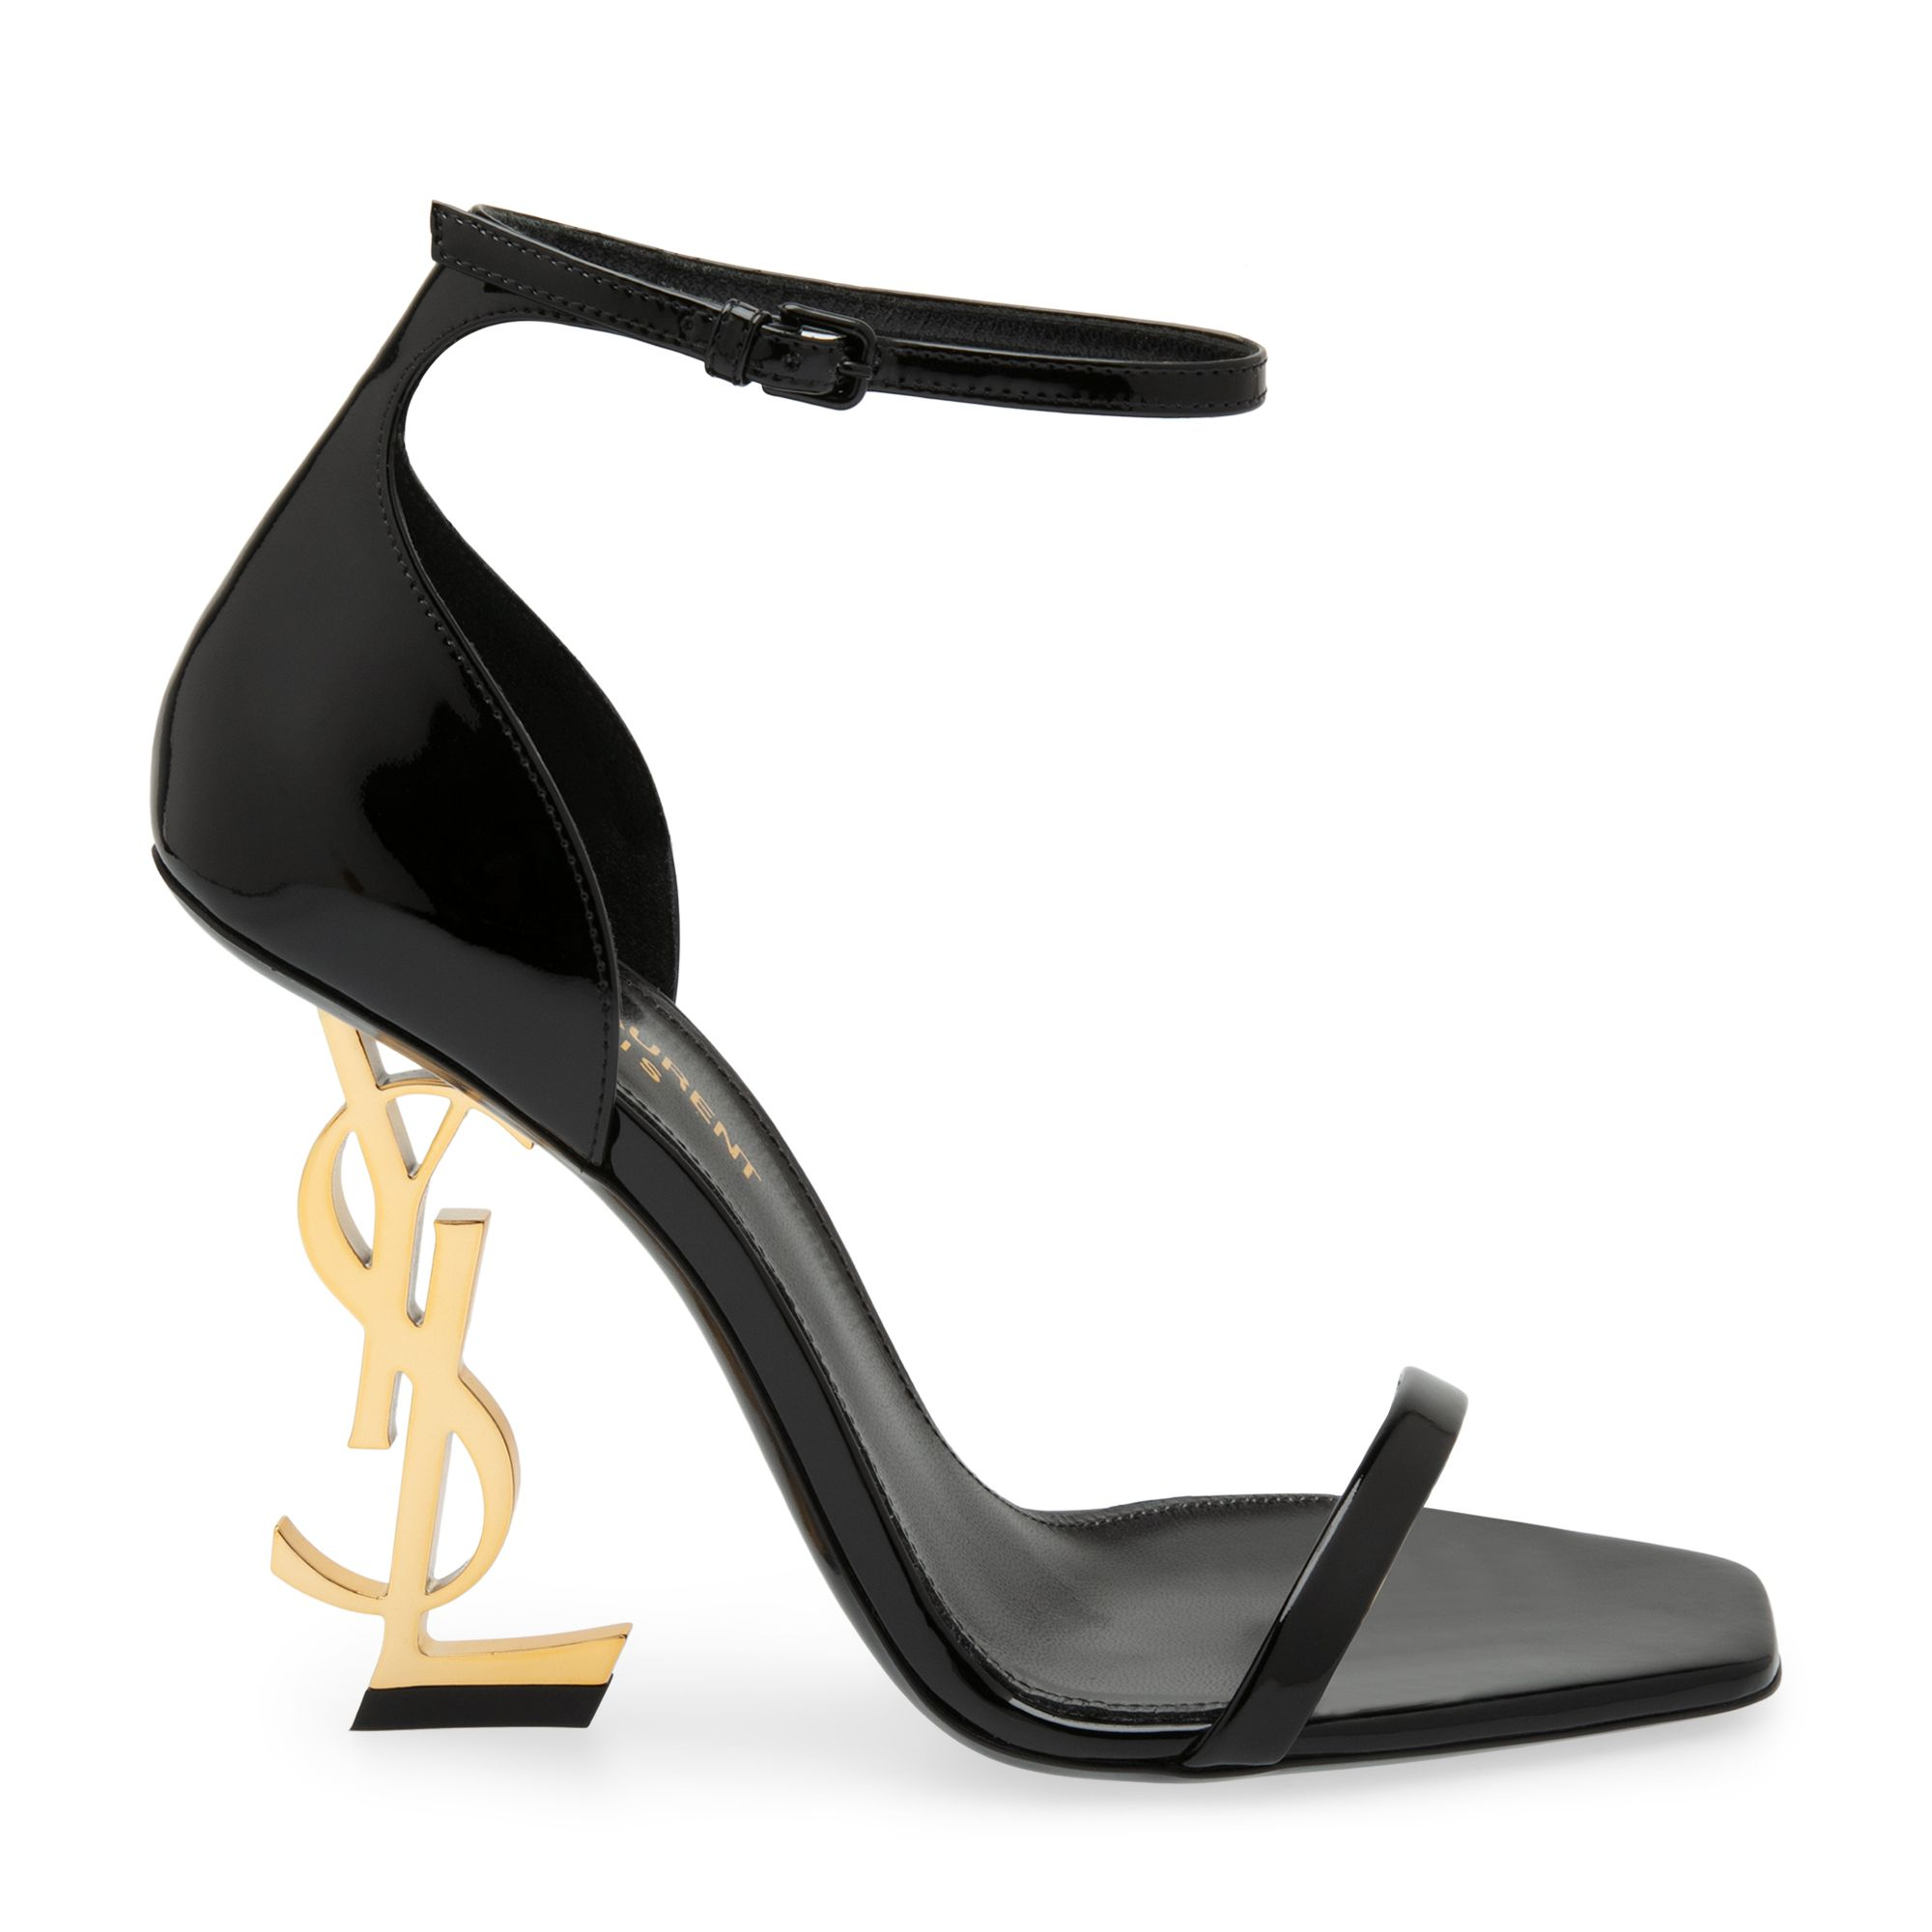 Opyum patent leather sandals